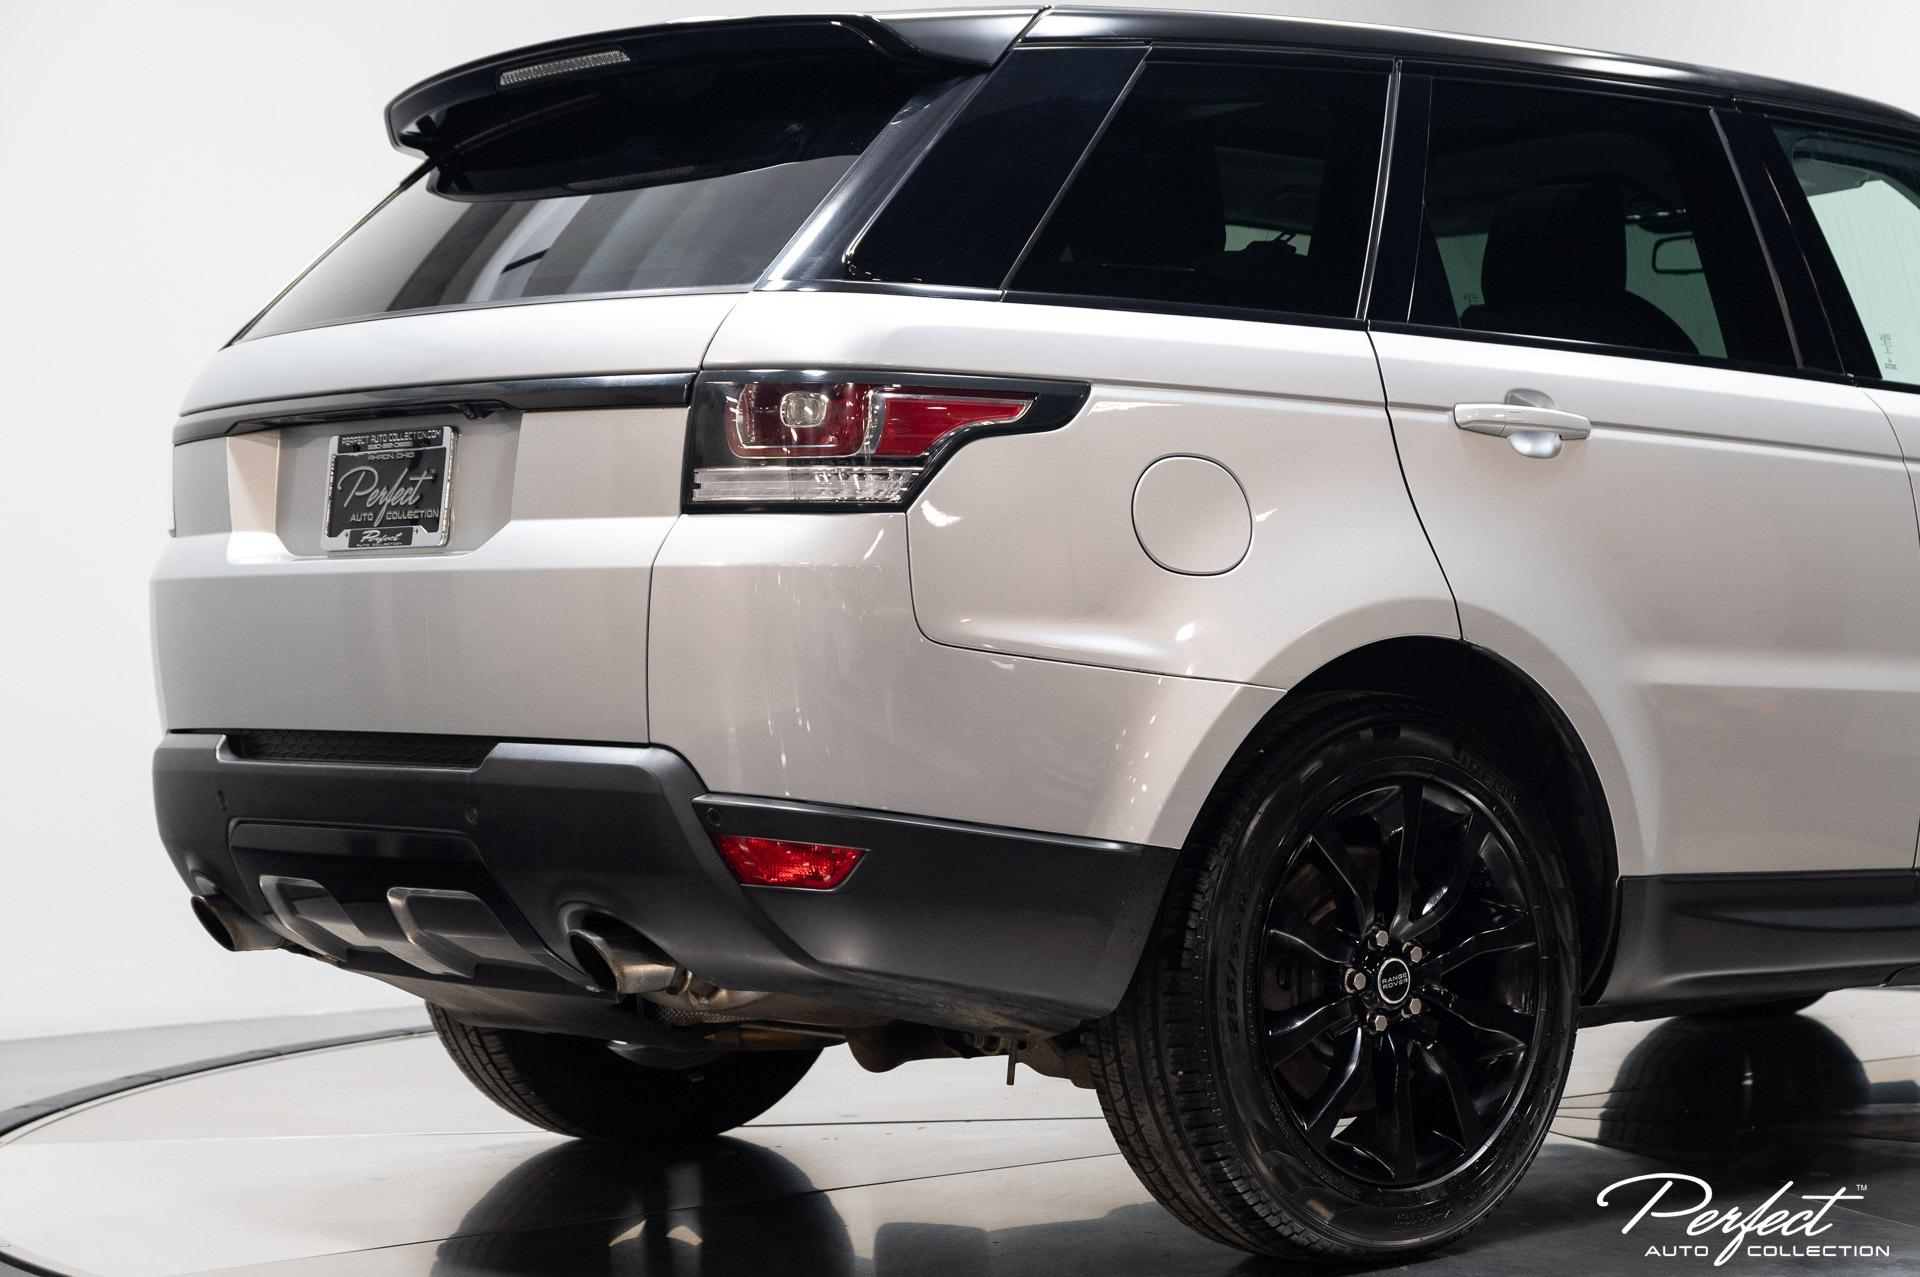 Used 2014 Land Rover Range Rover Sport Supercharged for sale Sold at Perfect Auto Collection in Akron OH 44310 4